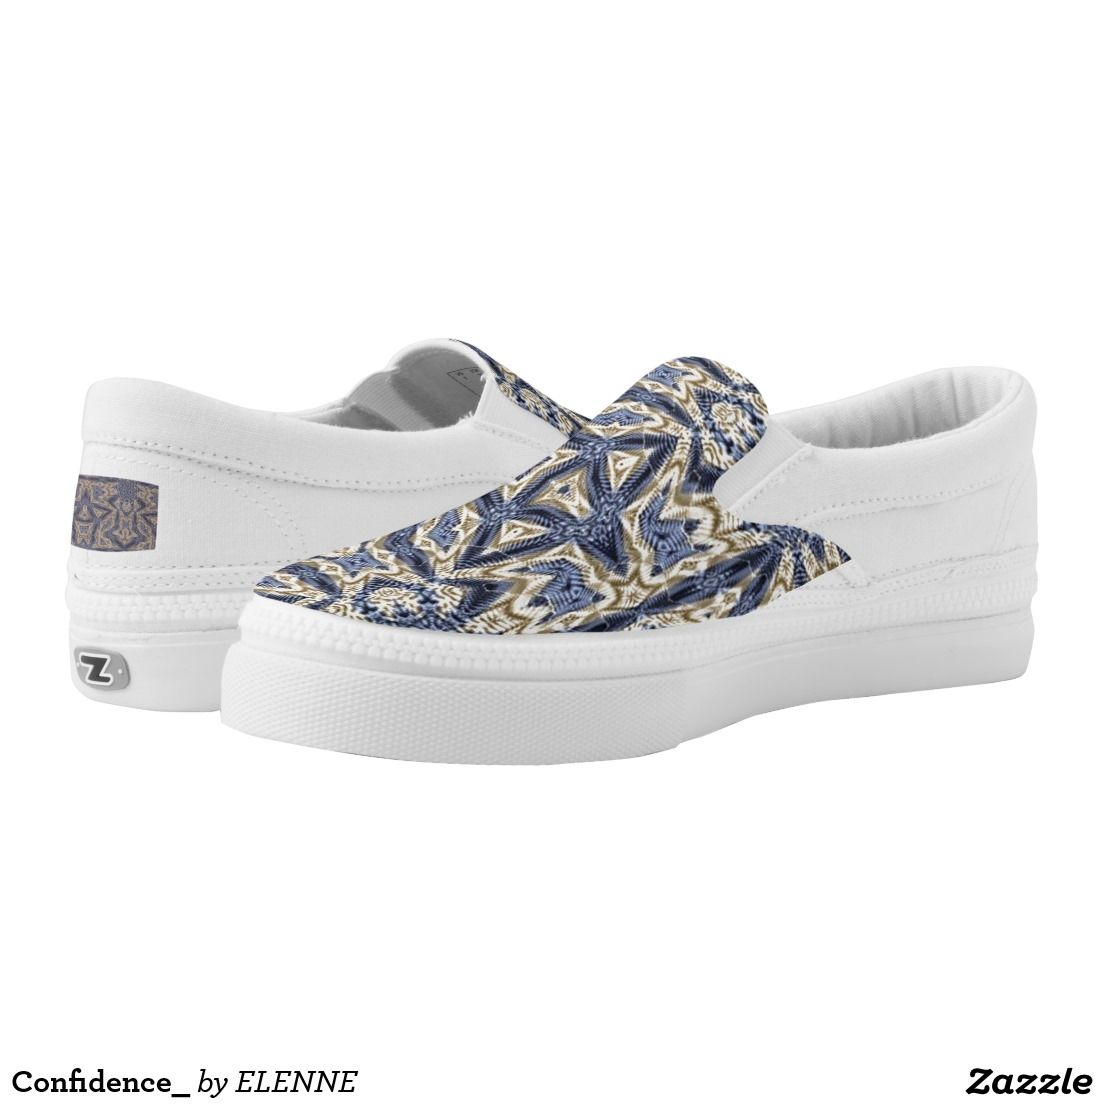 Confidence_ Printed Shoes